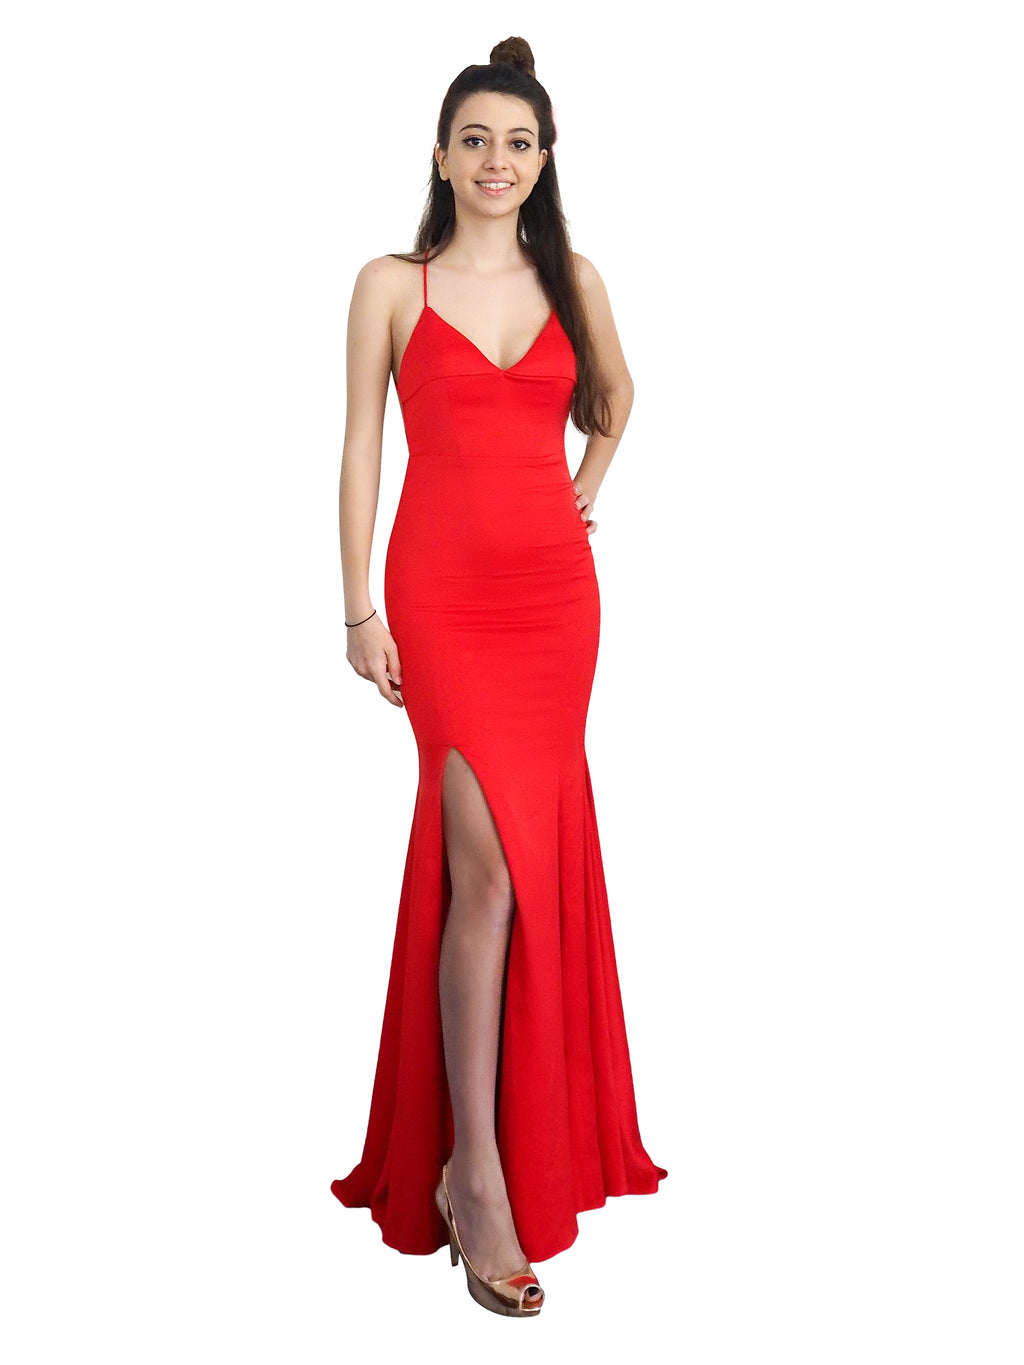 Reema bright red satin folded v-neck mermaid dress